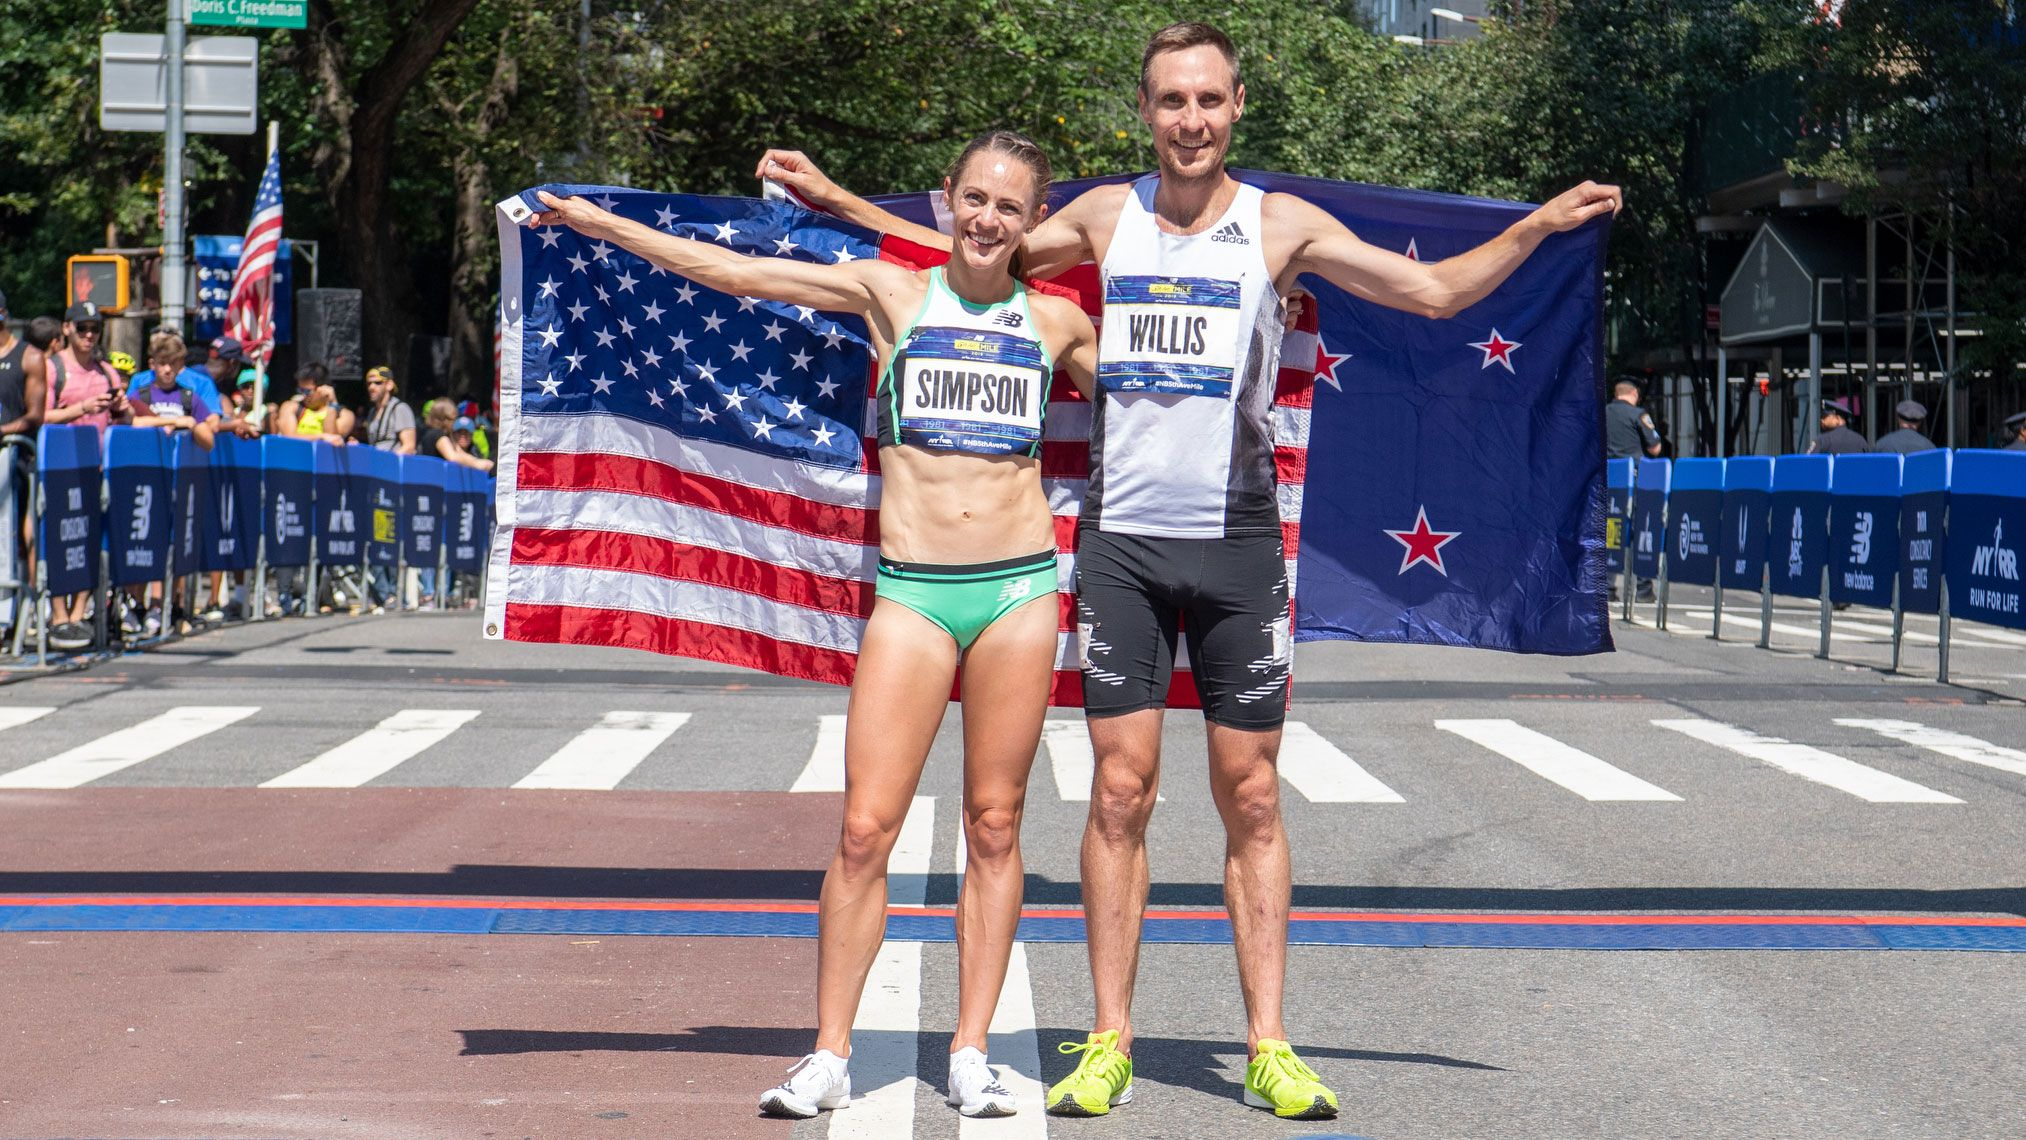 Thrilling Split-Second Finishes Lead to Victories for Simpson, Willis in 5th Avenue Mile